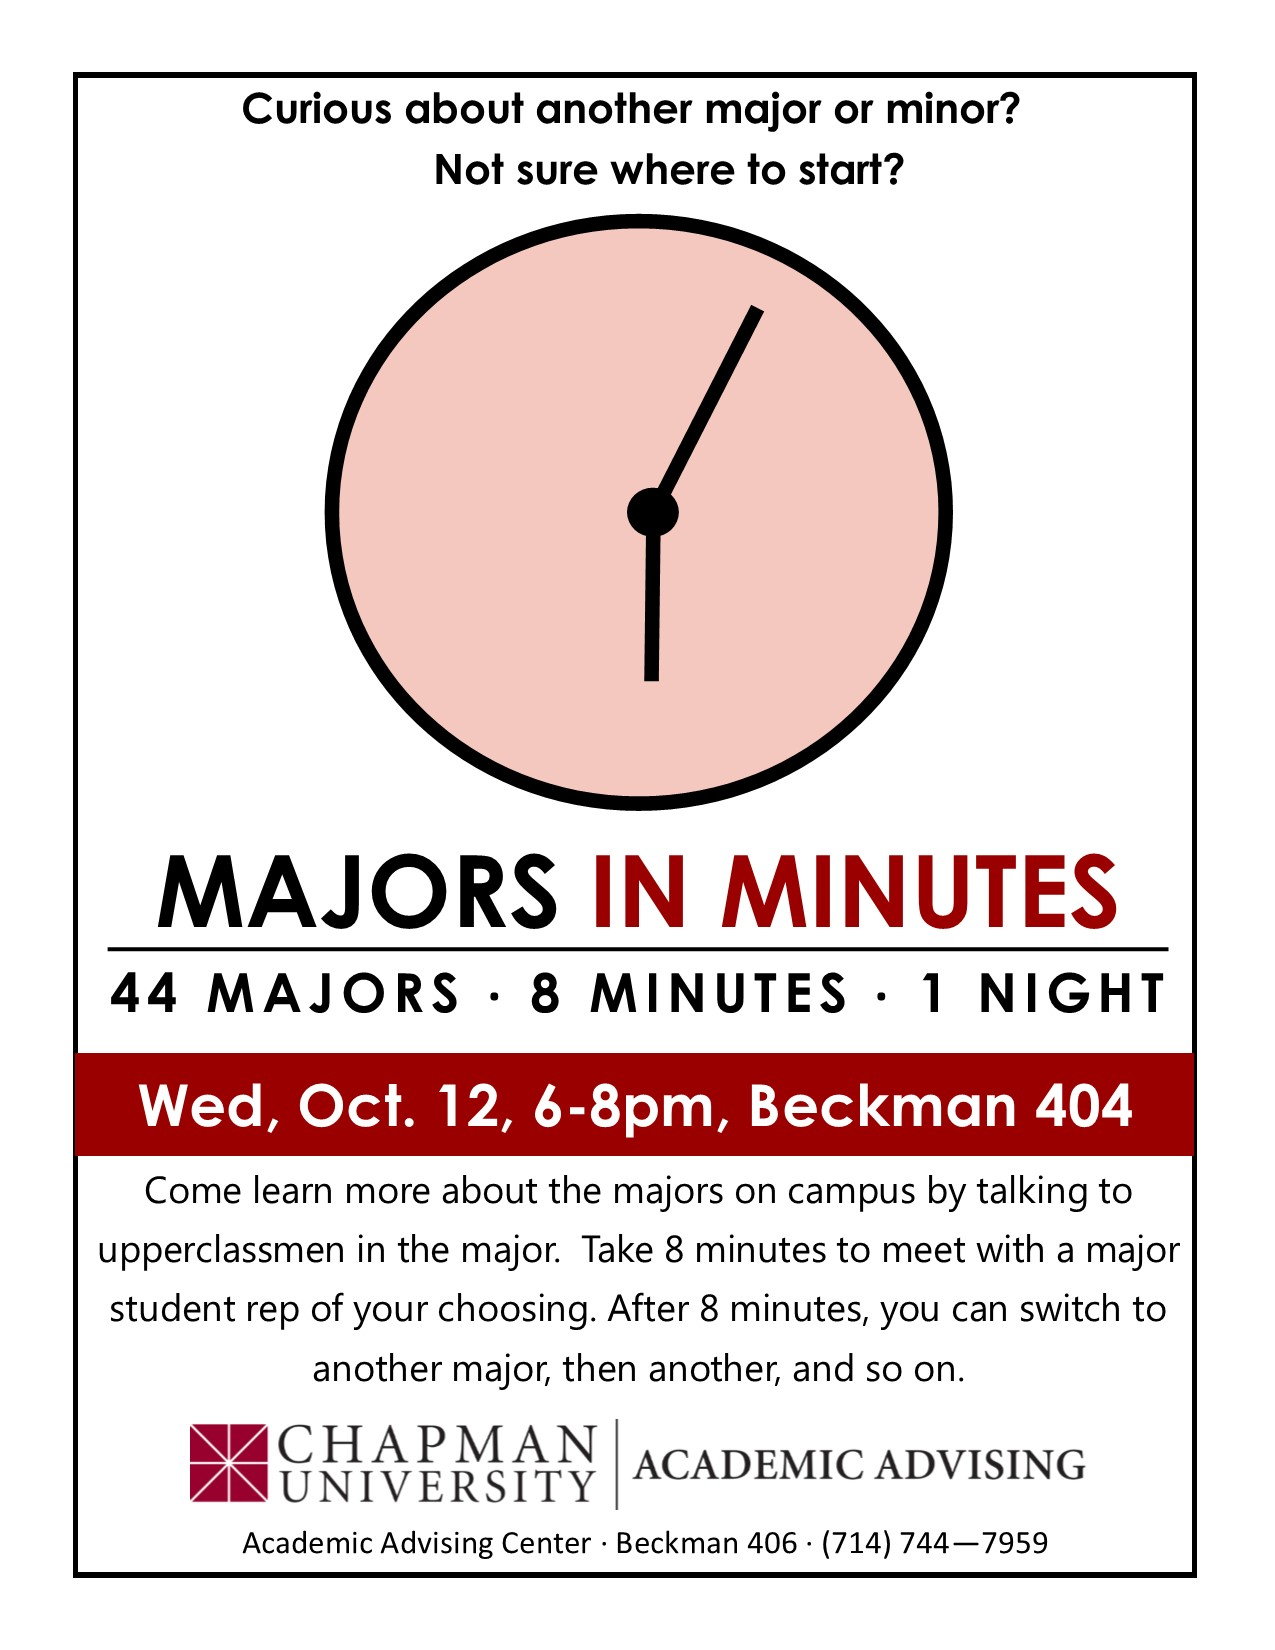 majors in minutes event academic advising university majors in minutes flyer